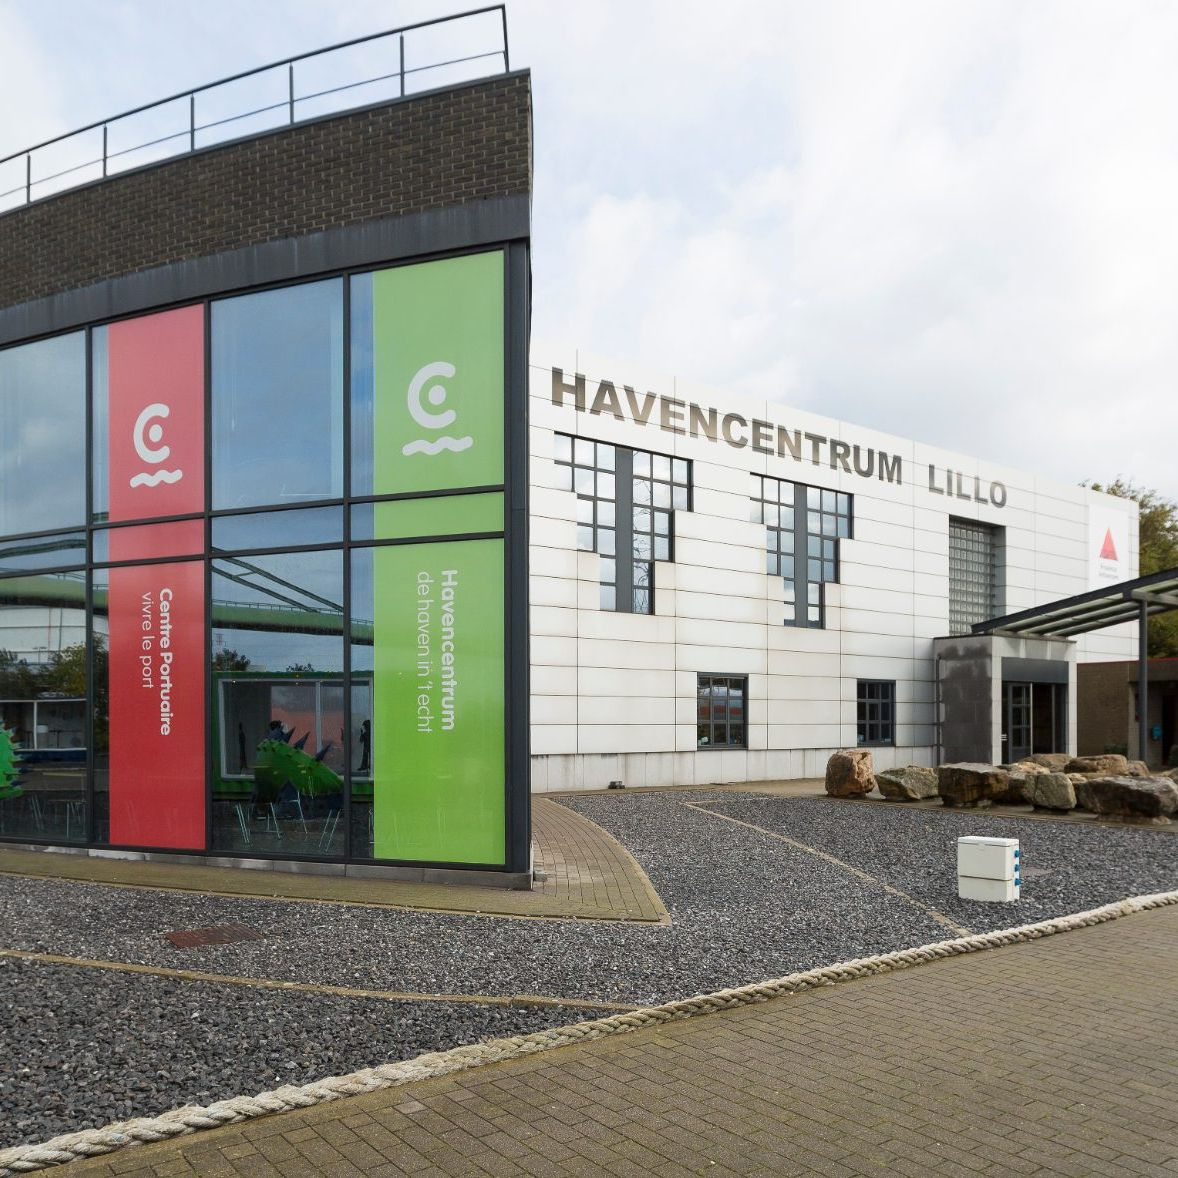 Foto: gebouw Havencentrum